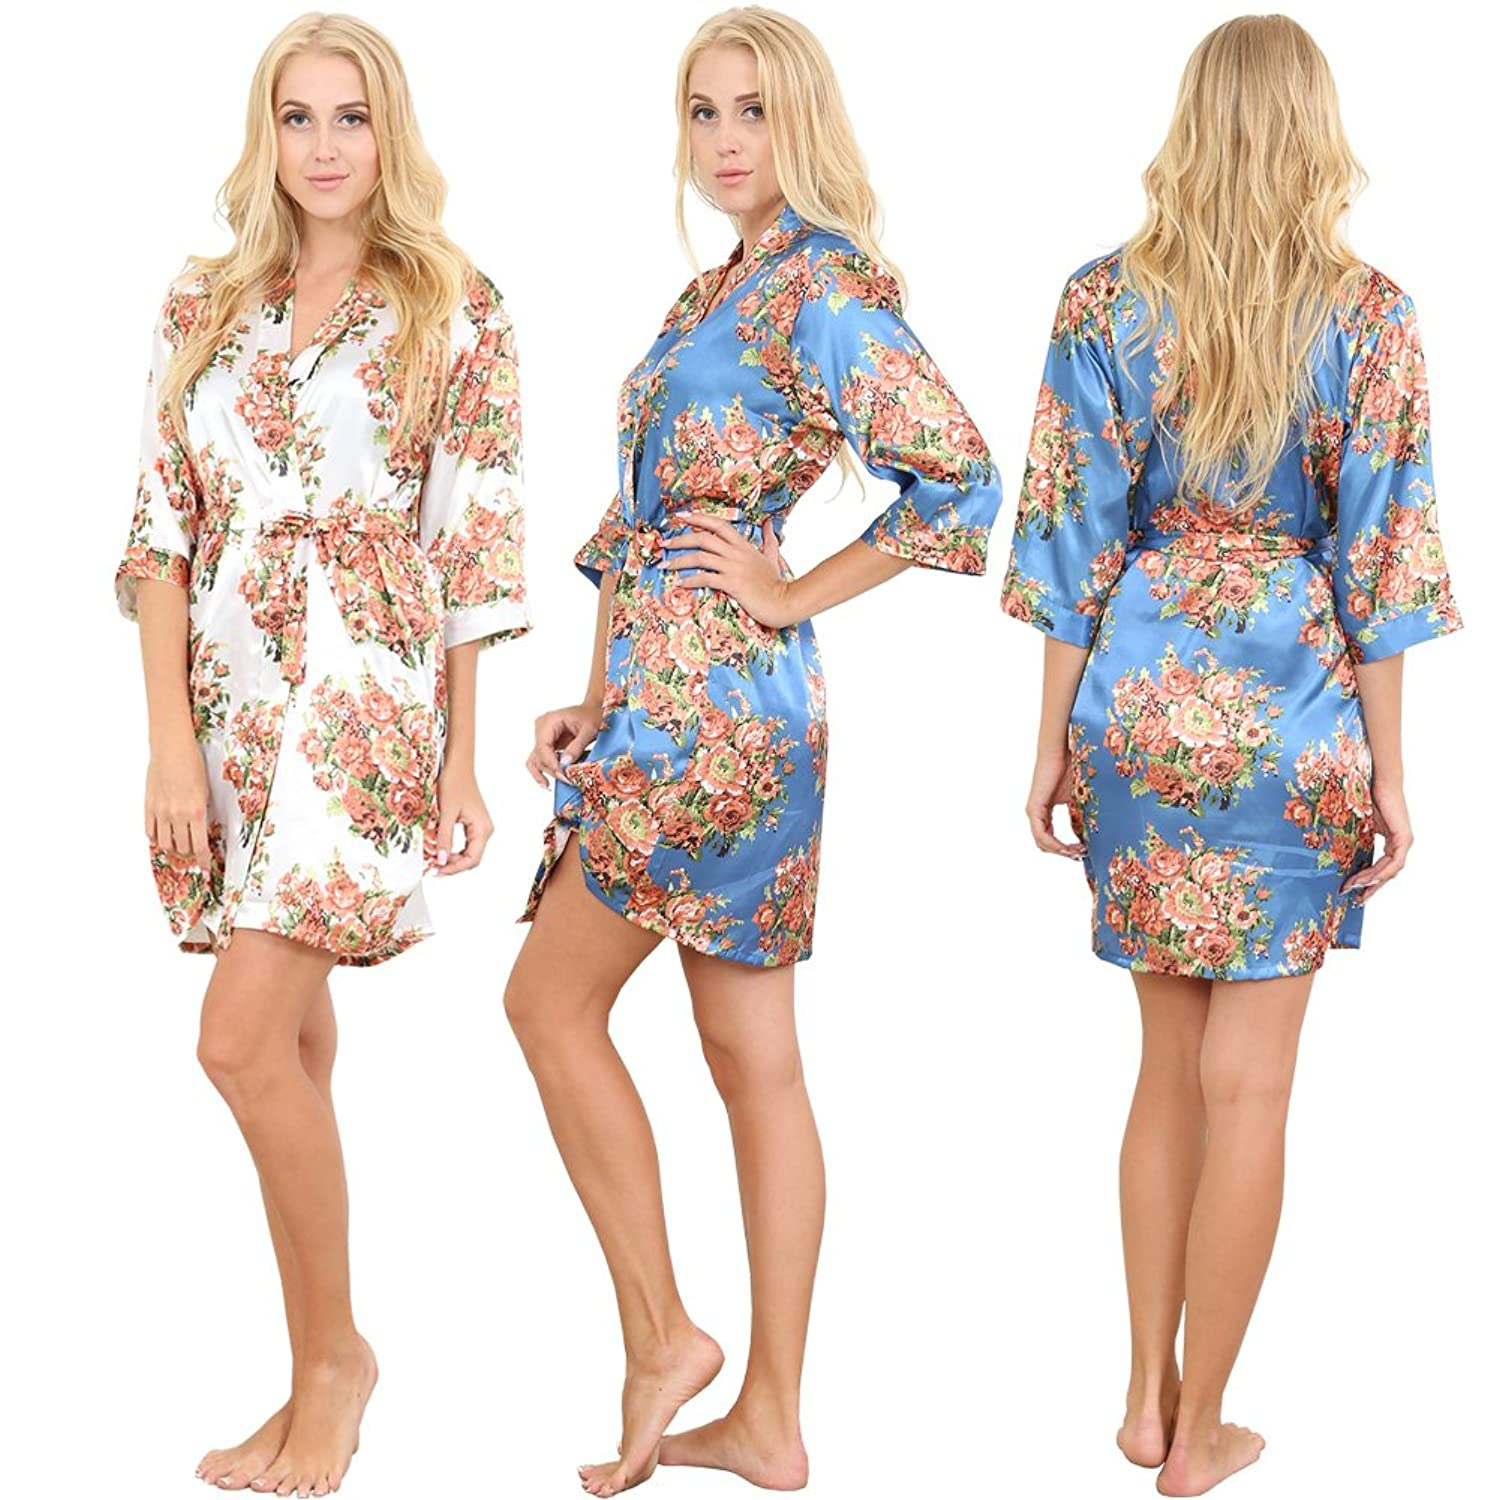 Set of 3 Women's Satin Short Floral Wedding Robes - Bridesmaids Dressing Gown